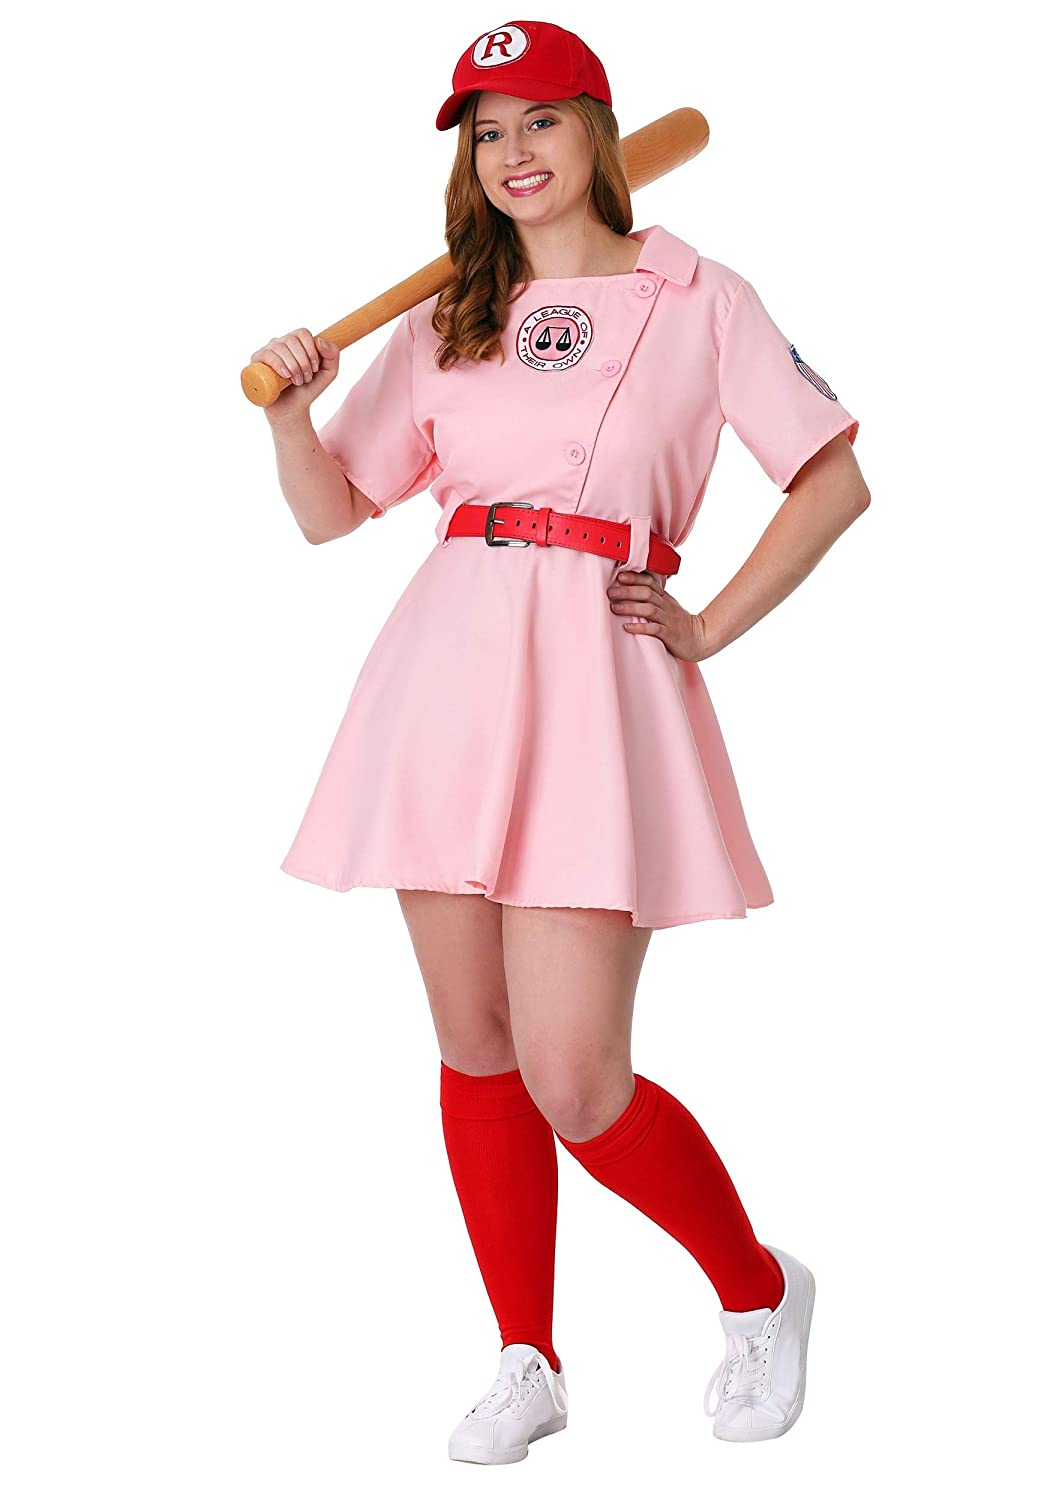 1940s Costumes- WW2, Nurse, Pinup, Rosie the Riveter League of Their Own Dottie Plus Size Womens Costume Set $69.99 AT vintagedancer.com